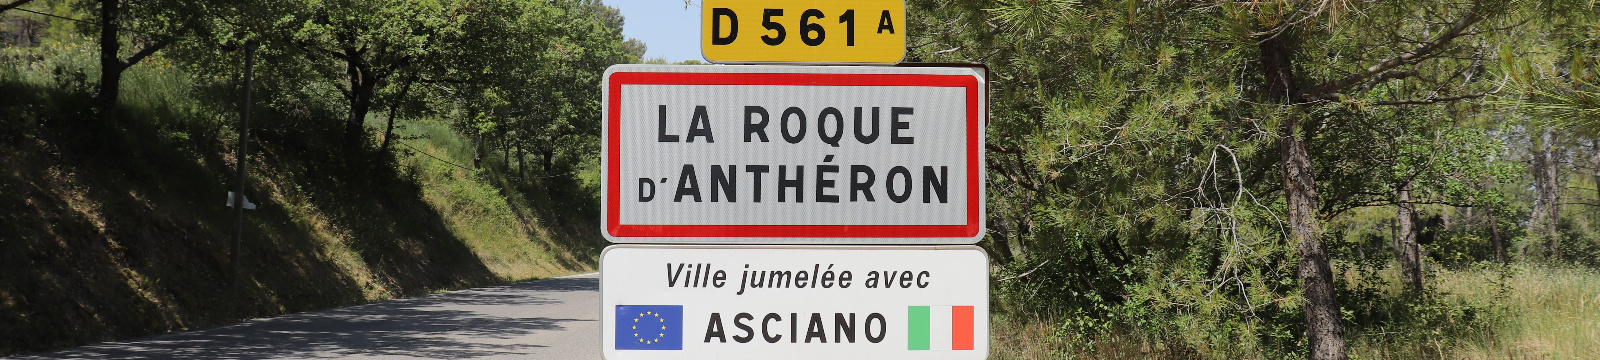 How to get to La Roque d'Anthéron ?